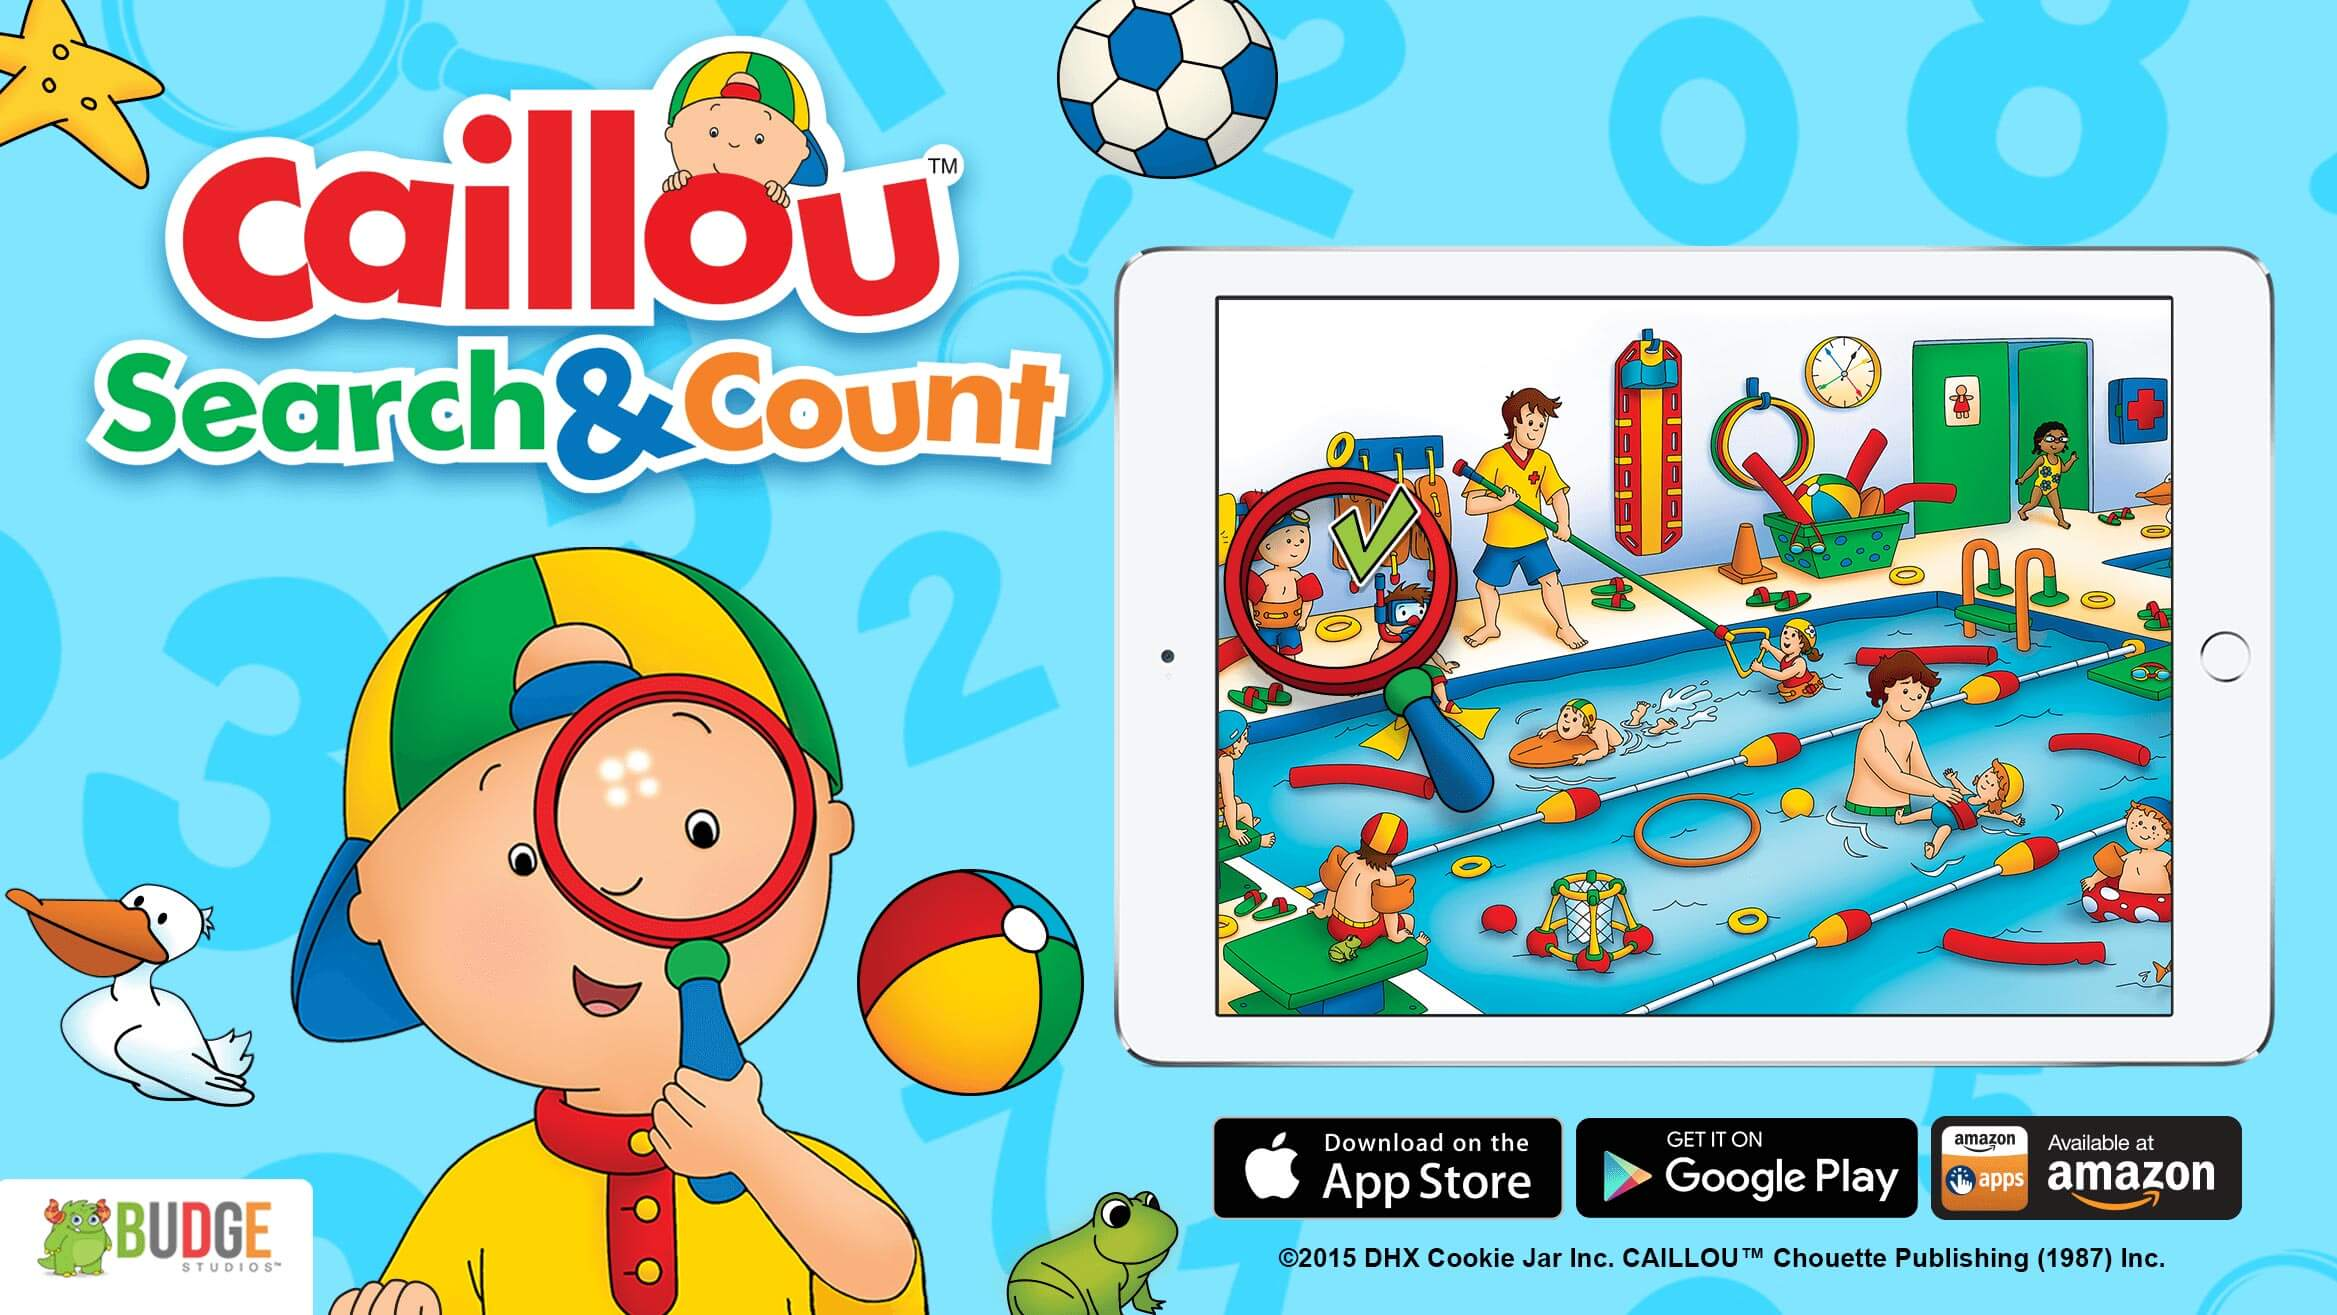 Caillou_WebBanner_2337x1315